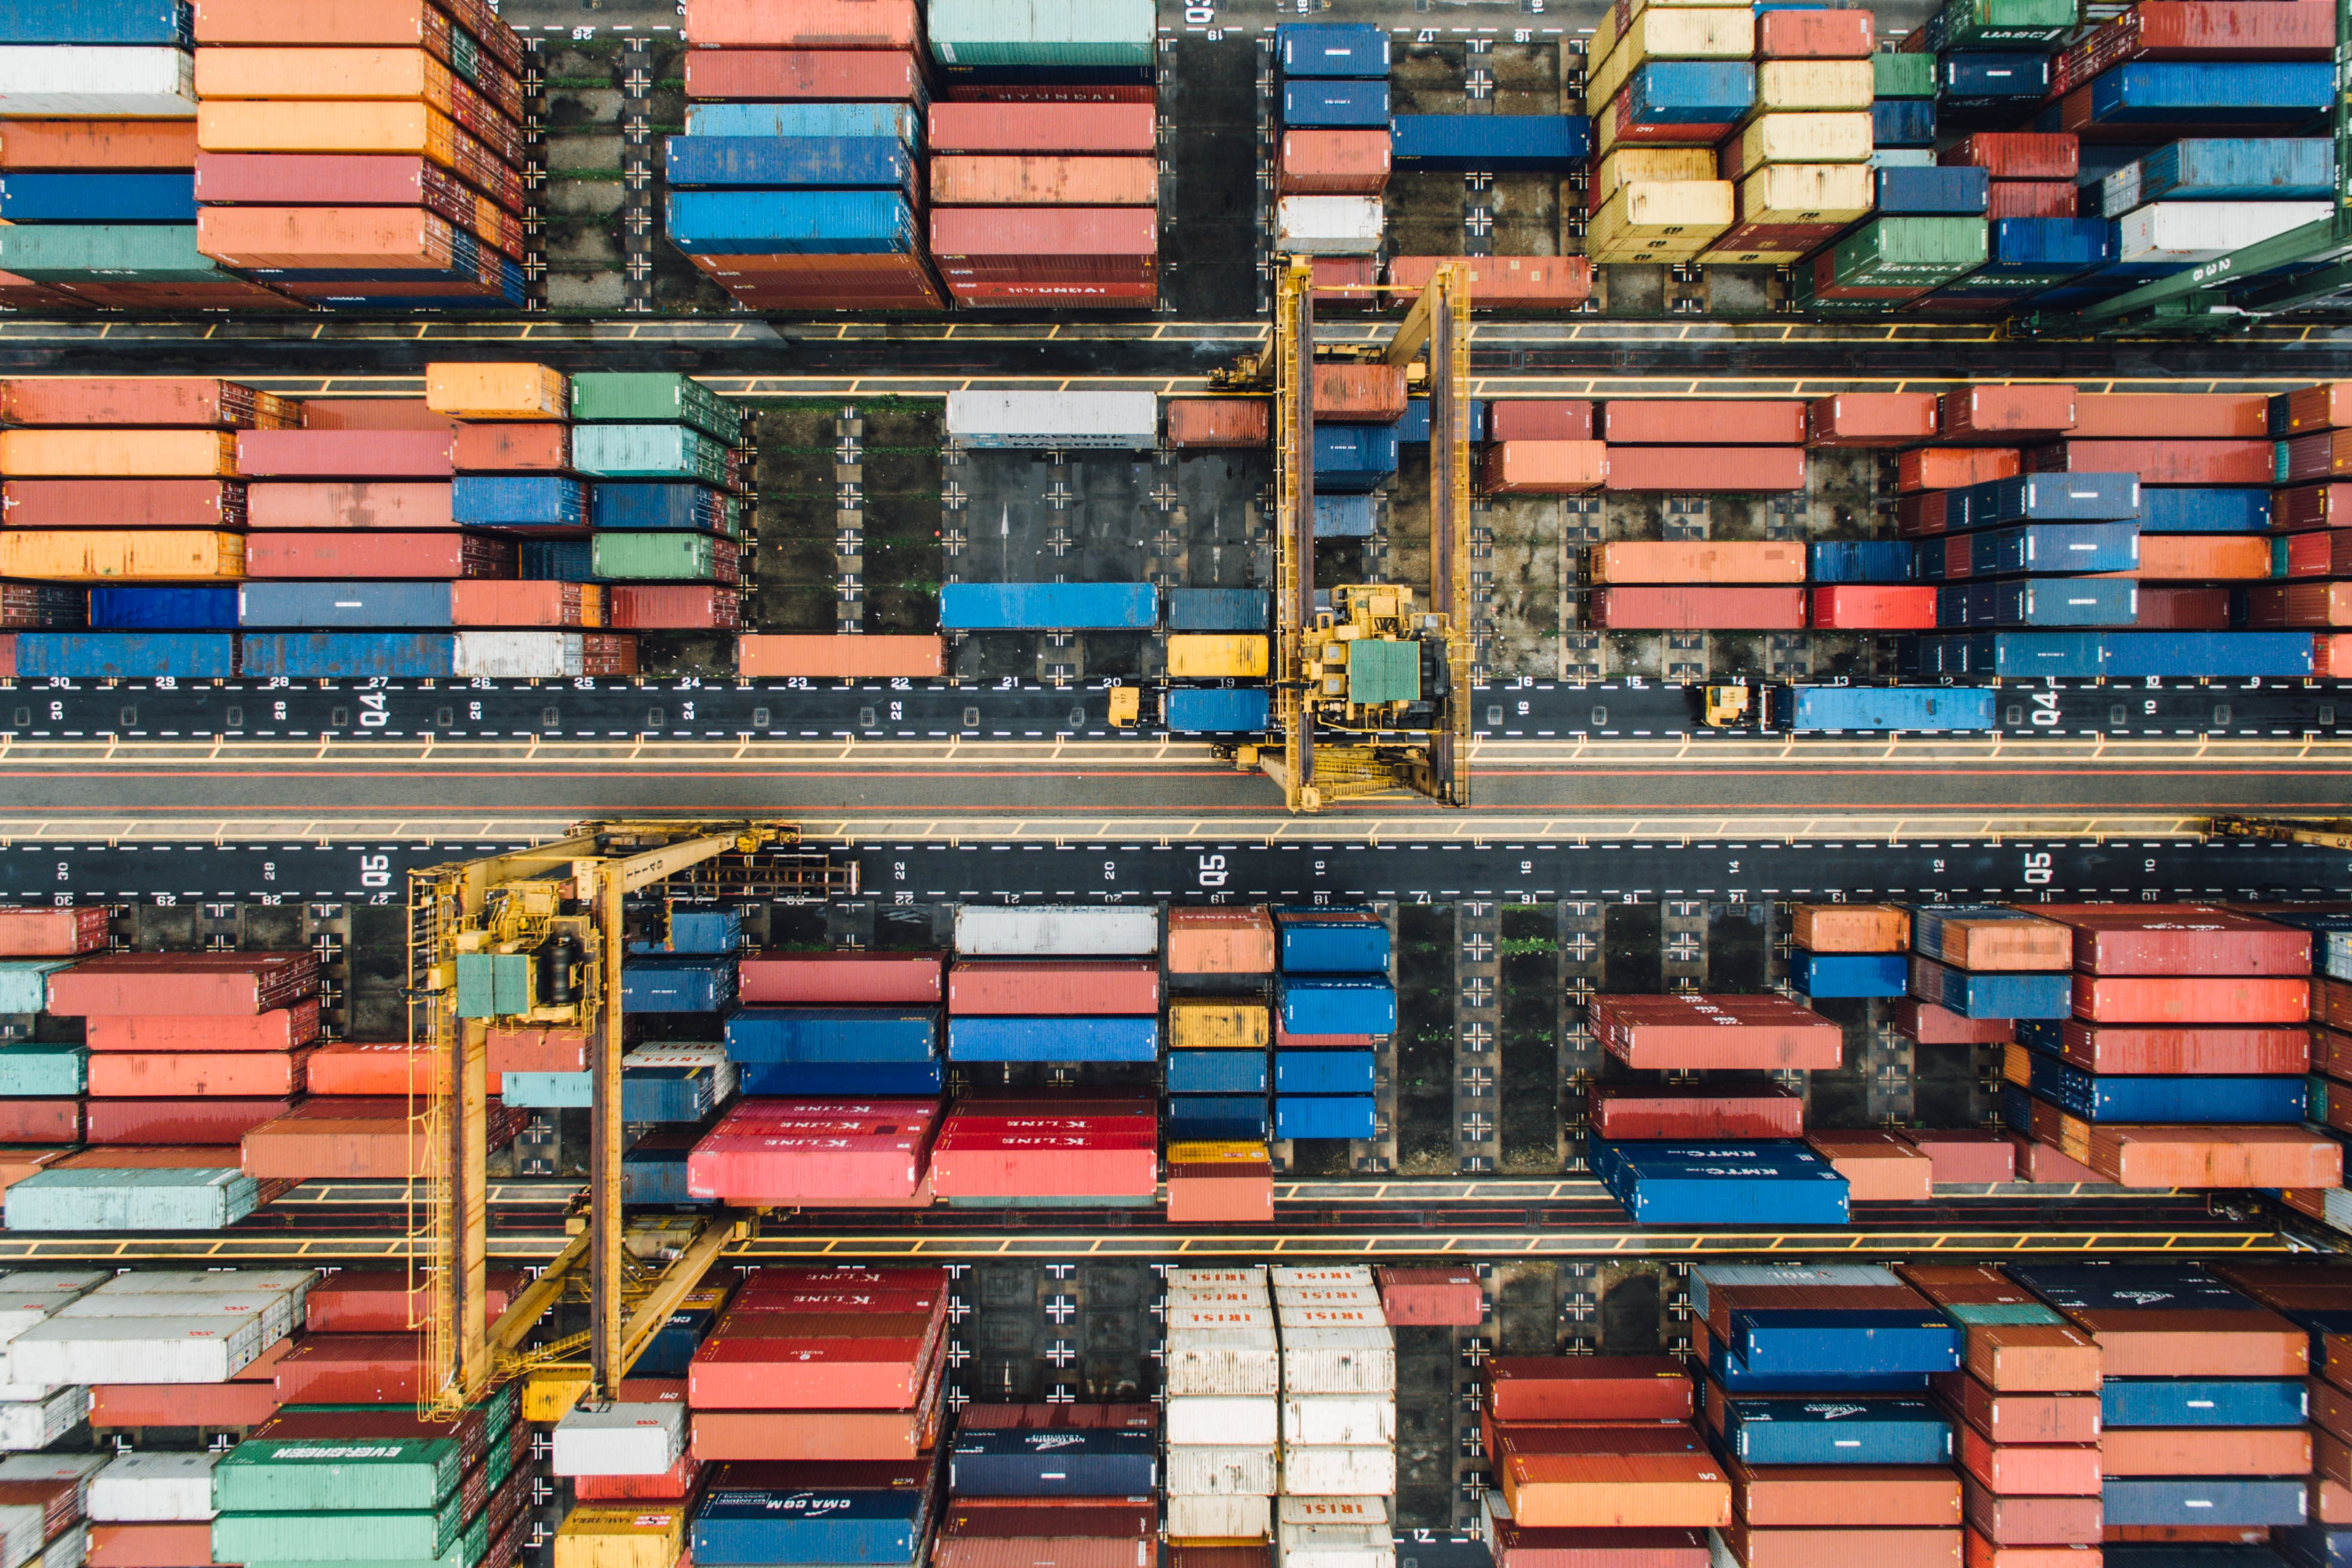 A drone shot of colorful shipping containers in a terminal in Singapore